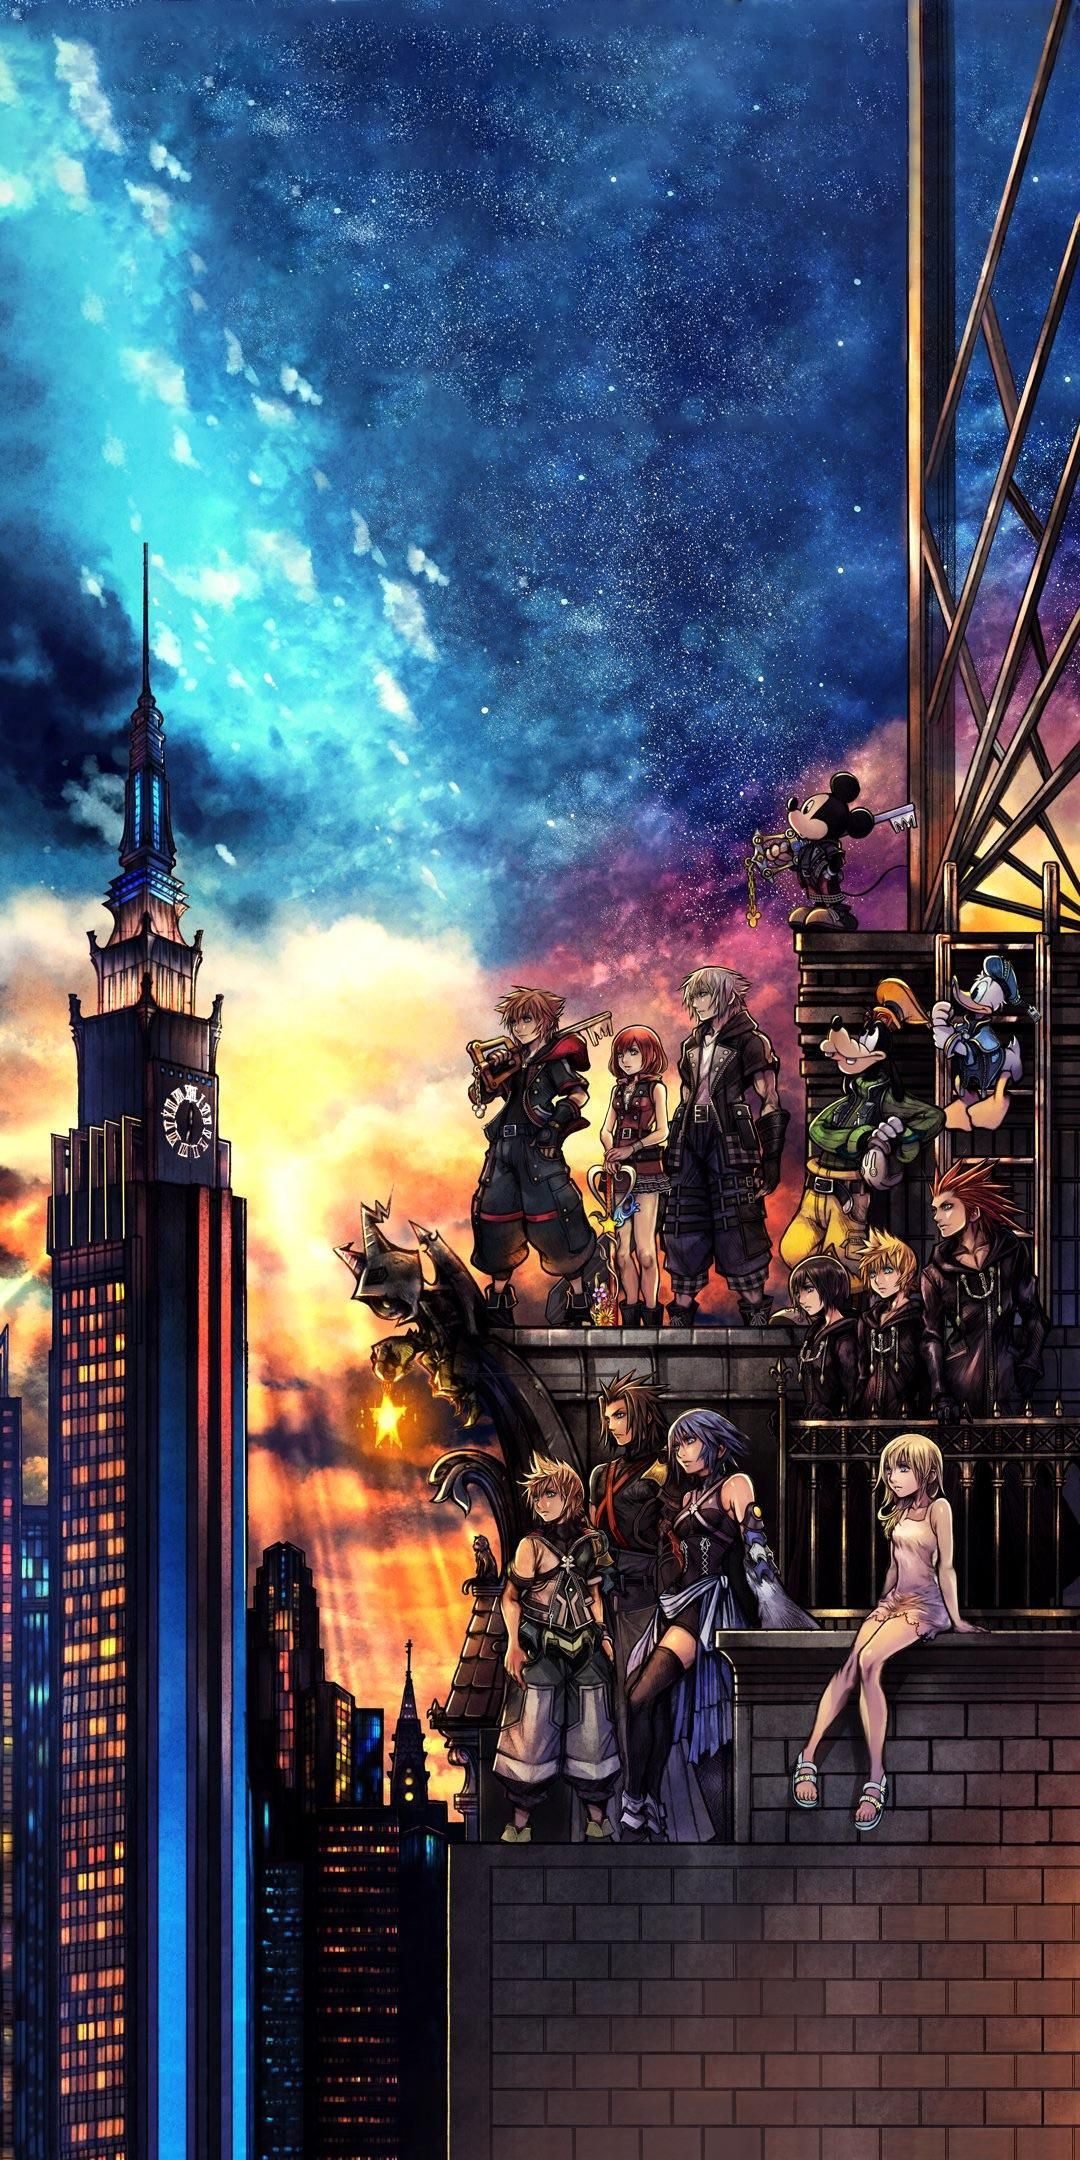 Download Kingdom Hearts Iphone Xs Max Wallpaper Kingdom Hearts Wallpaper Kingdom Hearts Art Kingdom Hearts